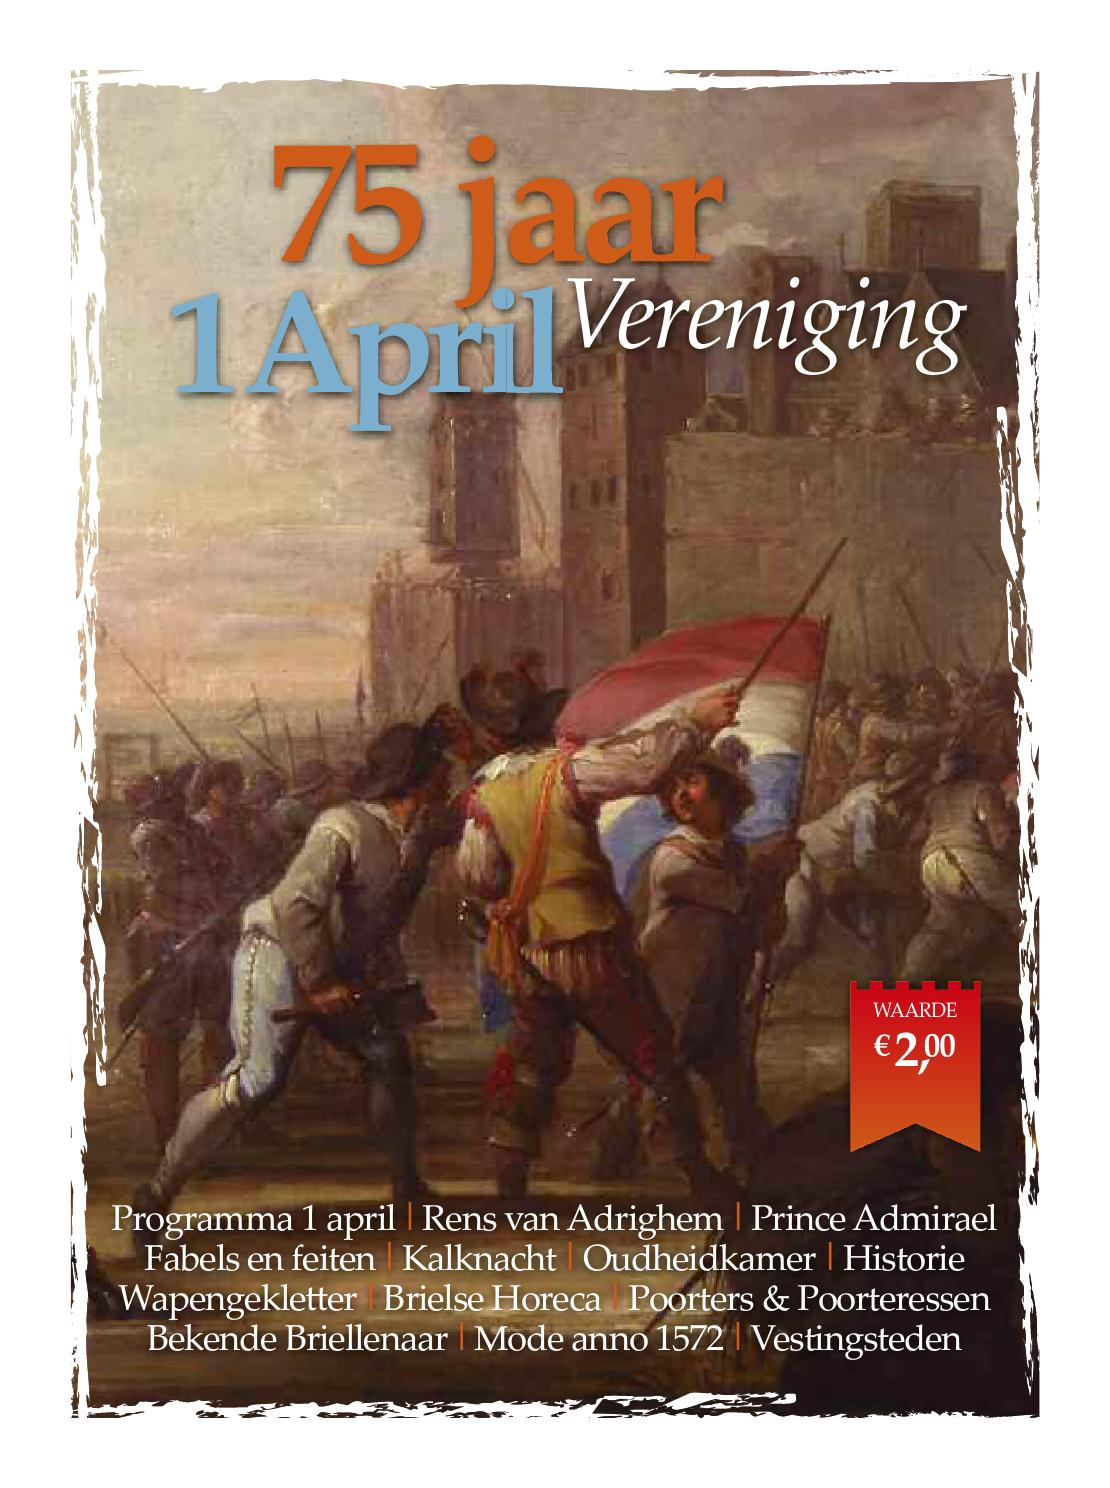 Jubileumkrant 1 april vereniging by briellenaer   issuu